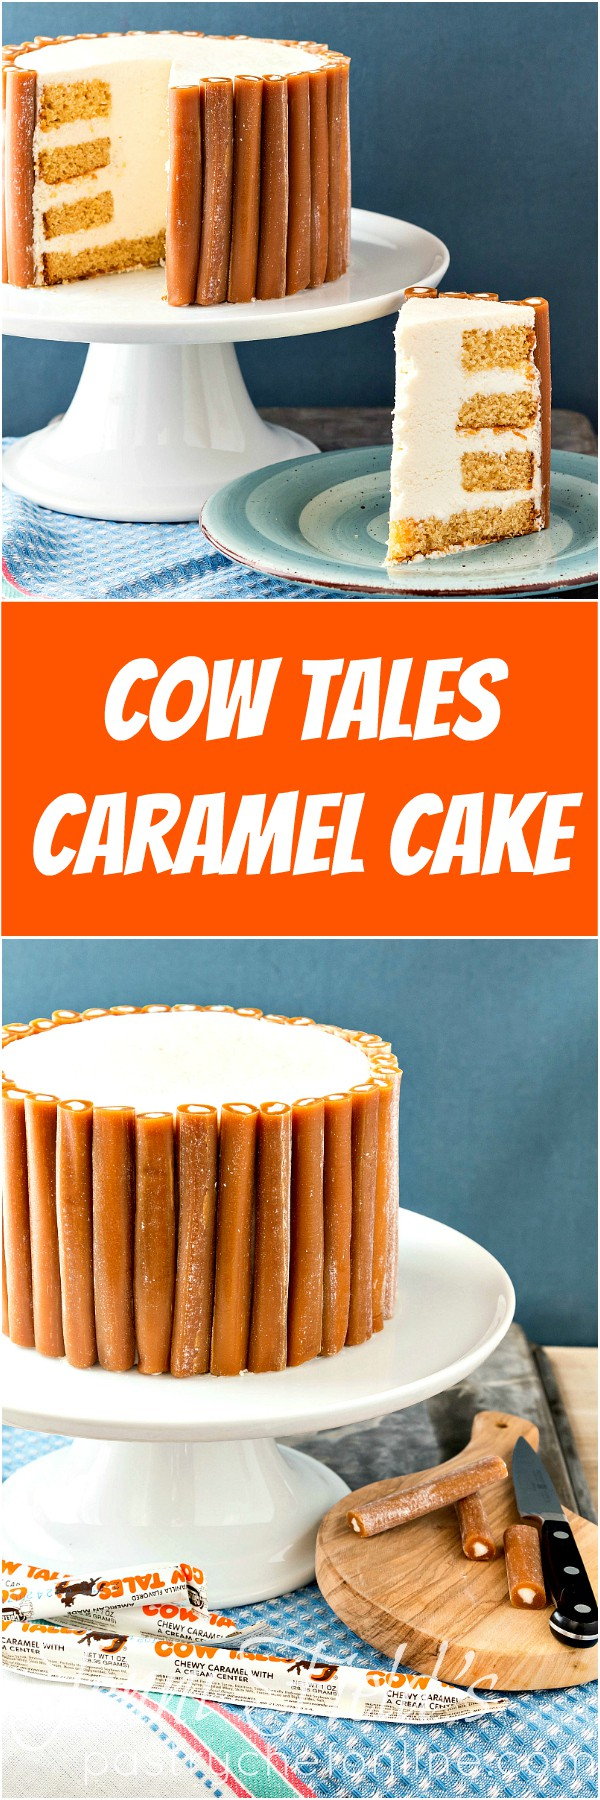 This Cow Tales® Caramel Cake is pure decadence. Four layers of caramel cake with cream between the layers and a core of frosting. Like one big Cow Tales candy surrounded by a bunch of little Cow Tales<sup>®</sup> candies. Enjoy in small pieces! | pastrychefonline.com